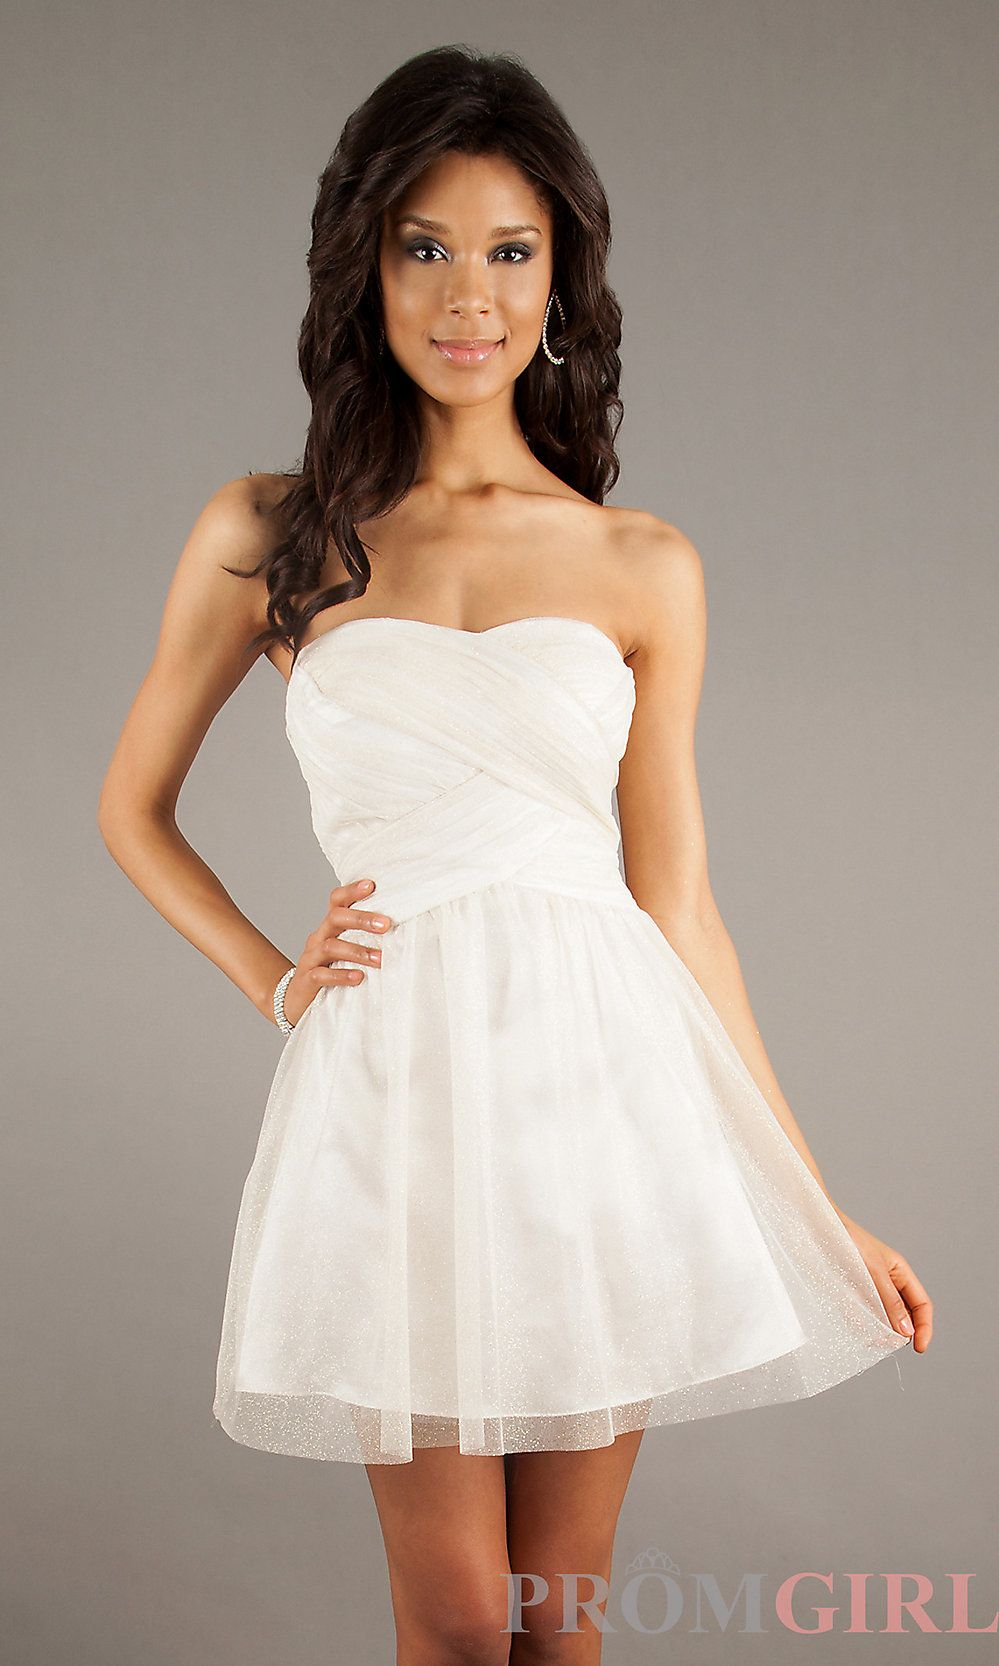 Search for mome styles strapless short wedding dress at low price